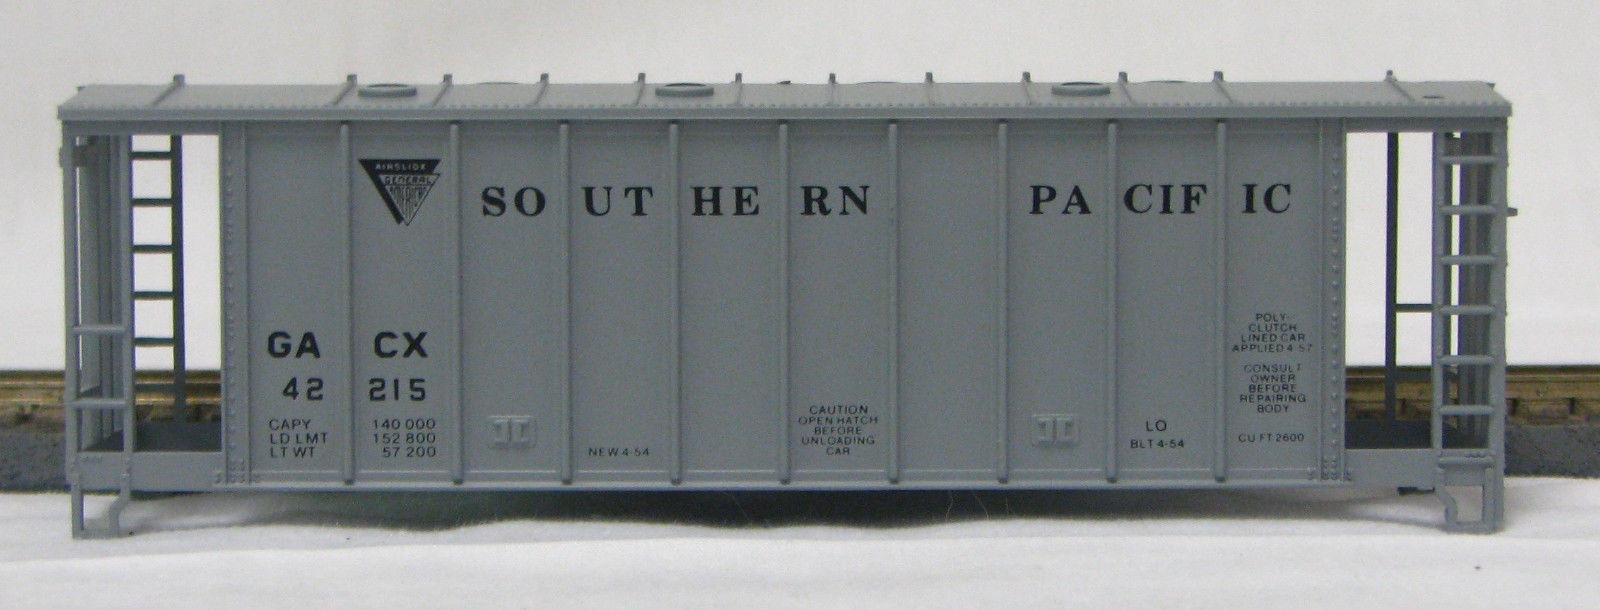 HO 2600 Cu Ft Airslide Covered Hopper (Kit) Southern Pacific (01-9703)